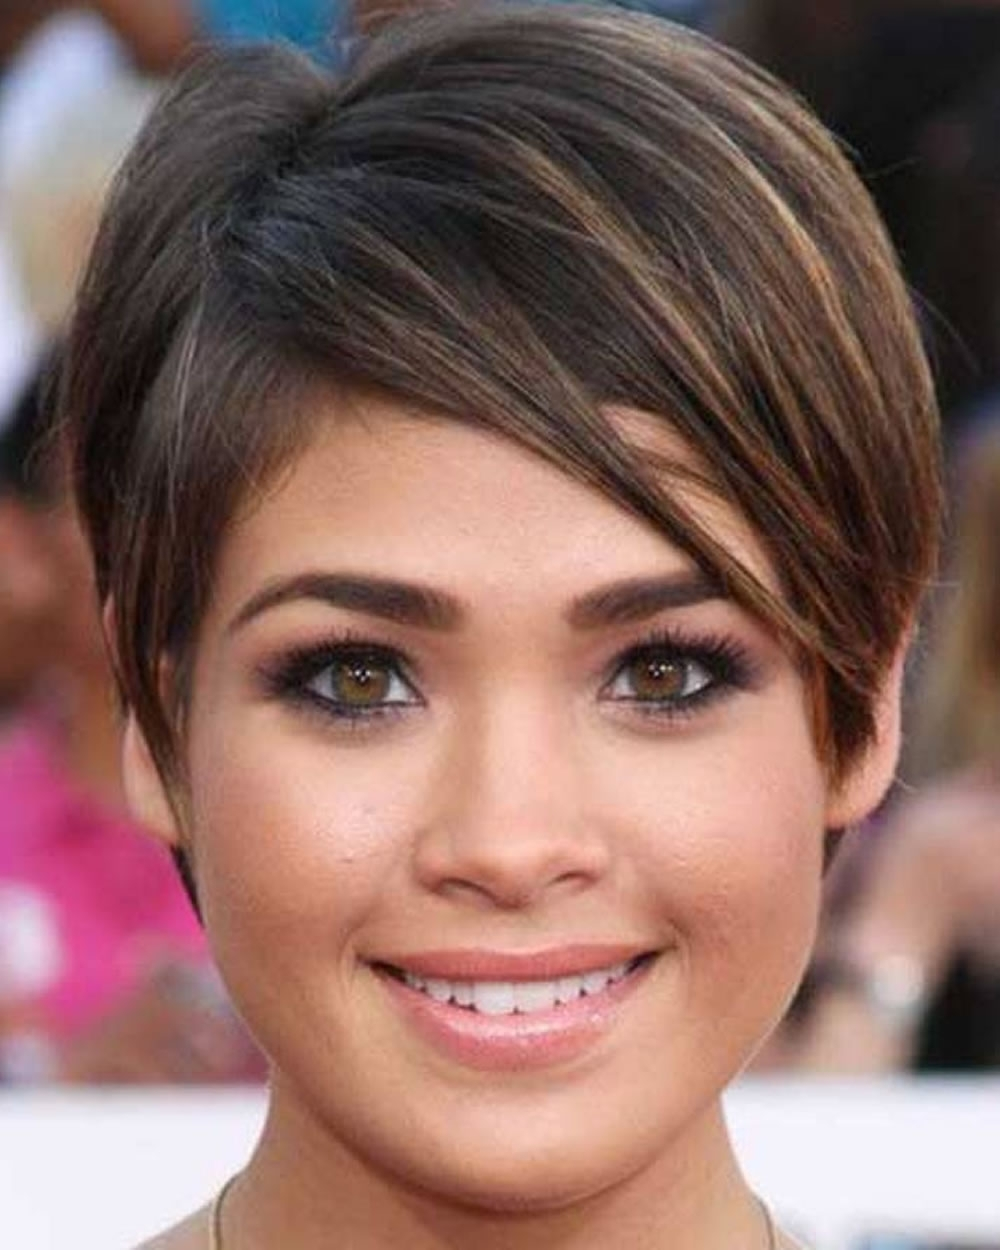 Pixie Hairstyles For Round Face And Thin Hair 2018 | Page 6 Of 8 Pertaining To Most Popular Pixie Hairstyles For Round Faces (View 5 of 15)